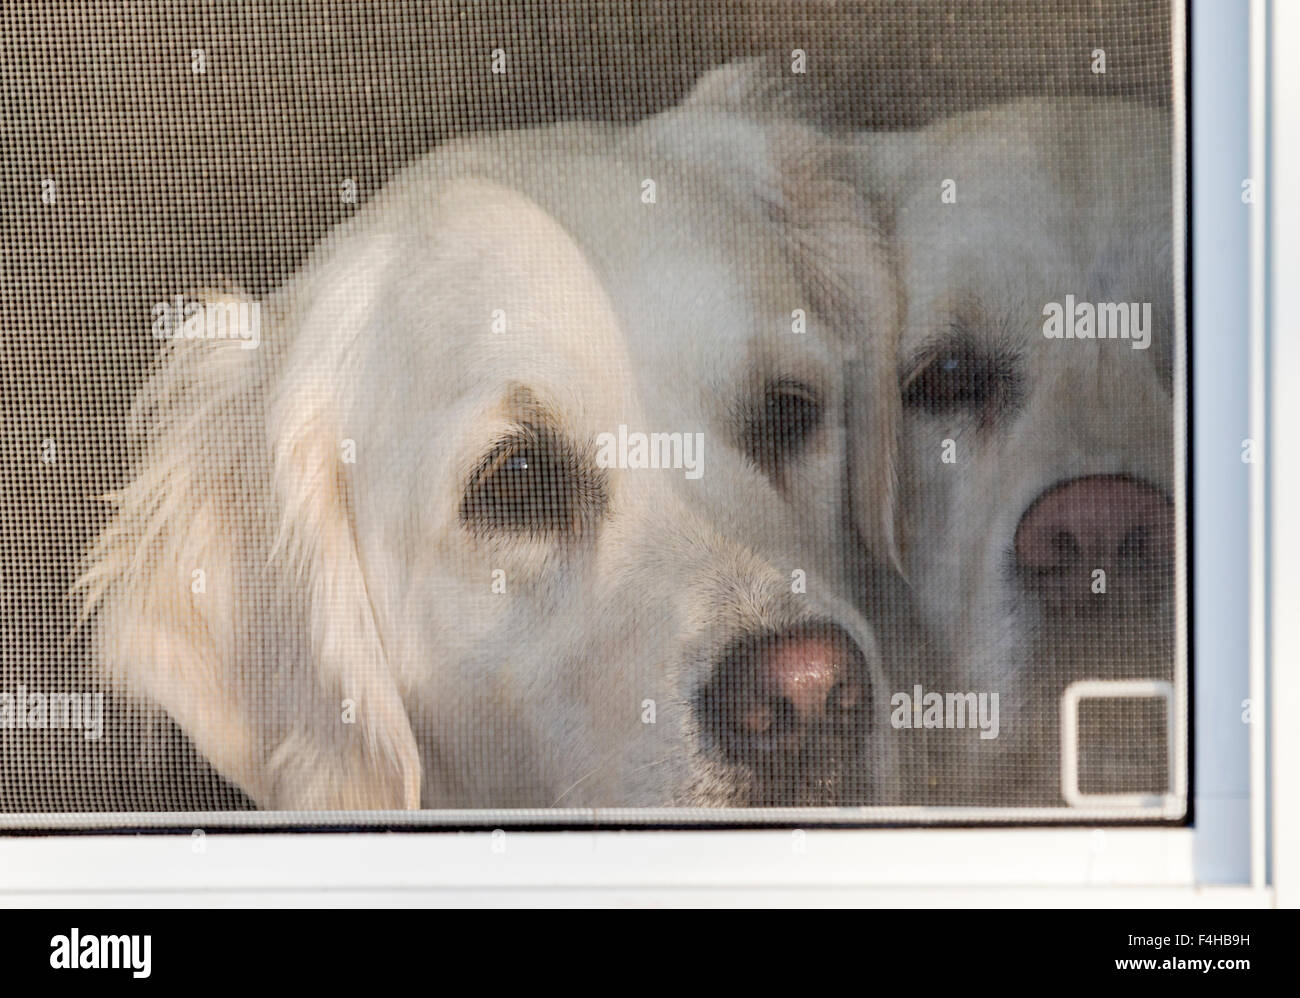 Two Platinum colored Golden Retriever dogs looking out a window. - Stock Image